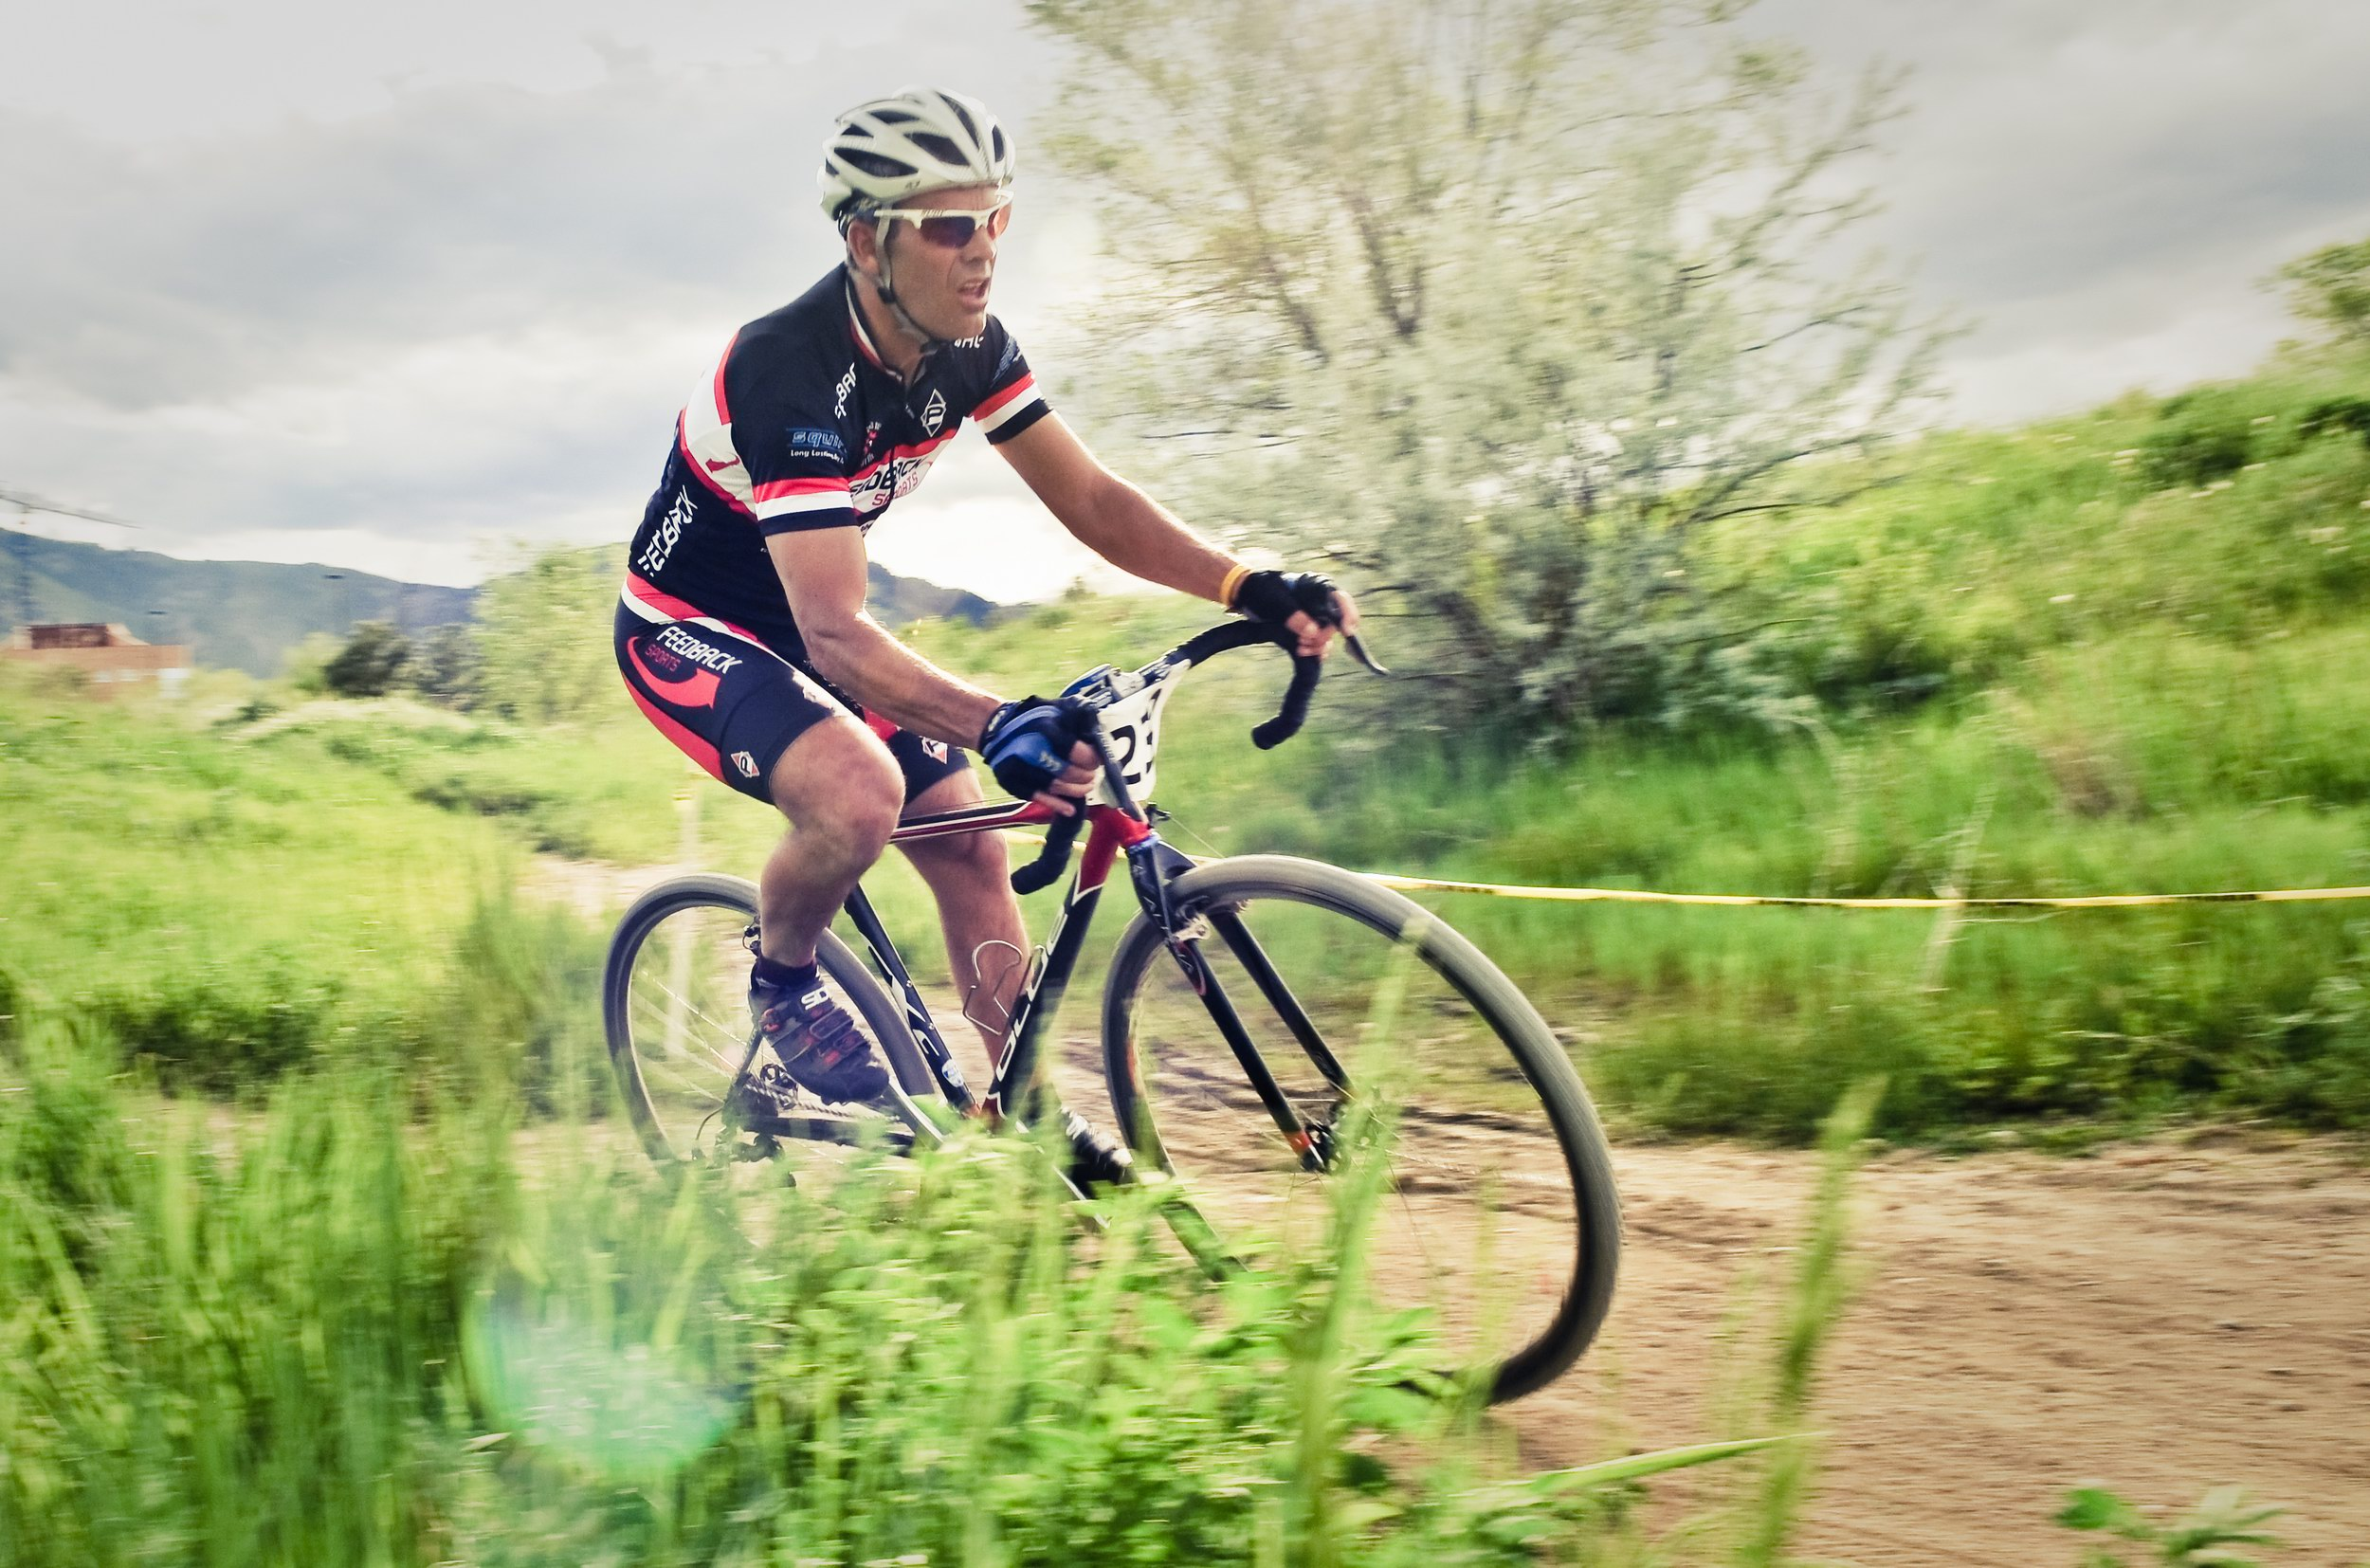 Bicycle-Sport-Mountain-Bike